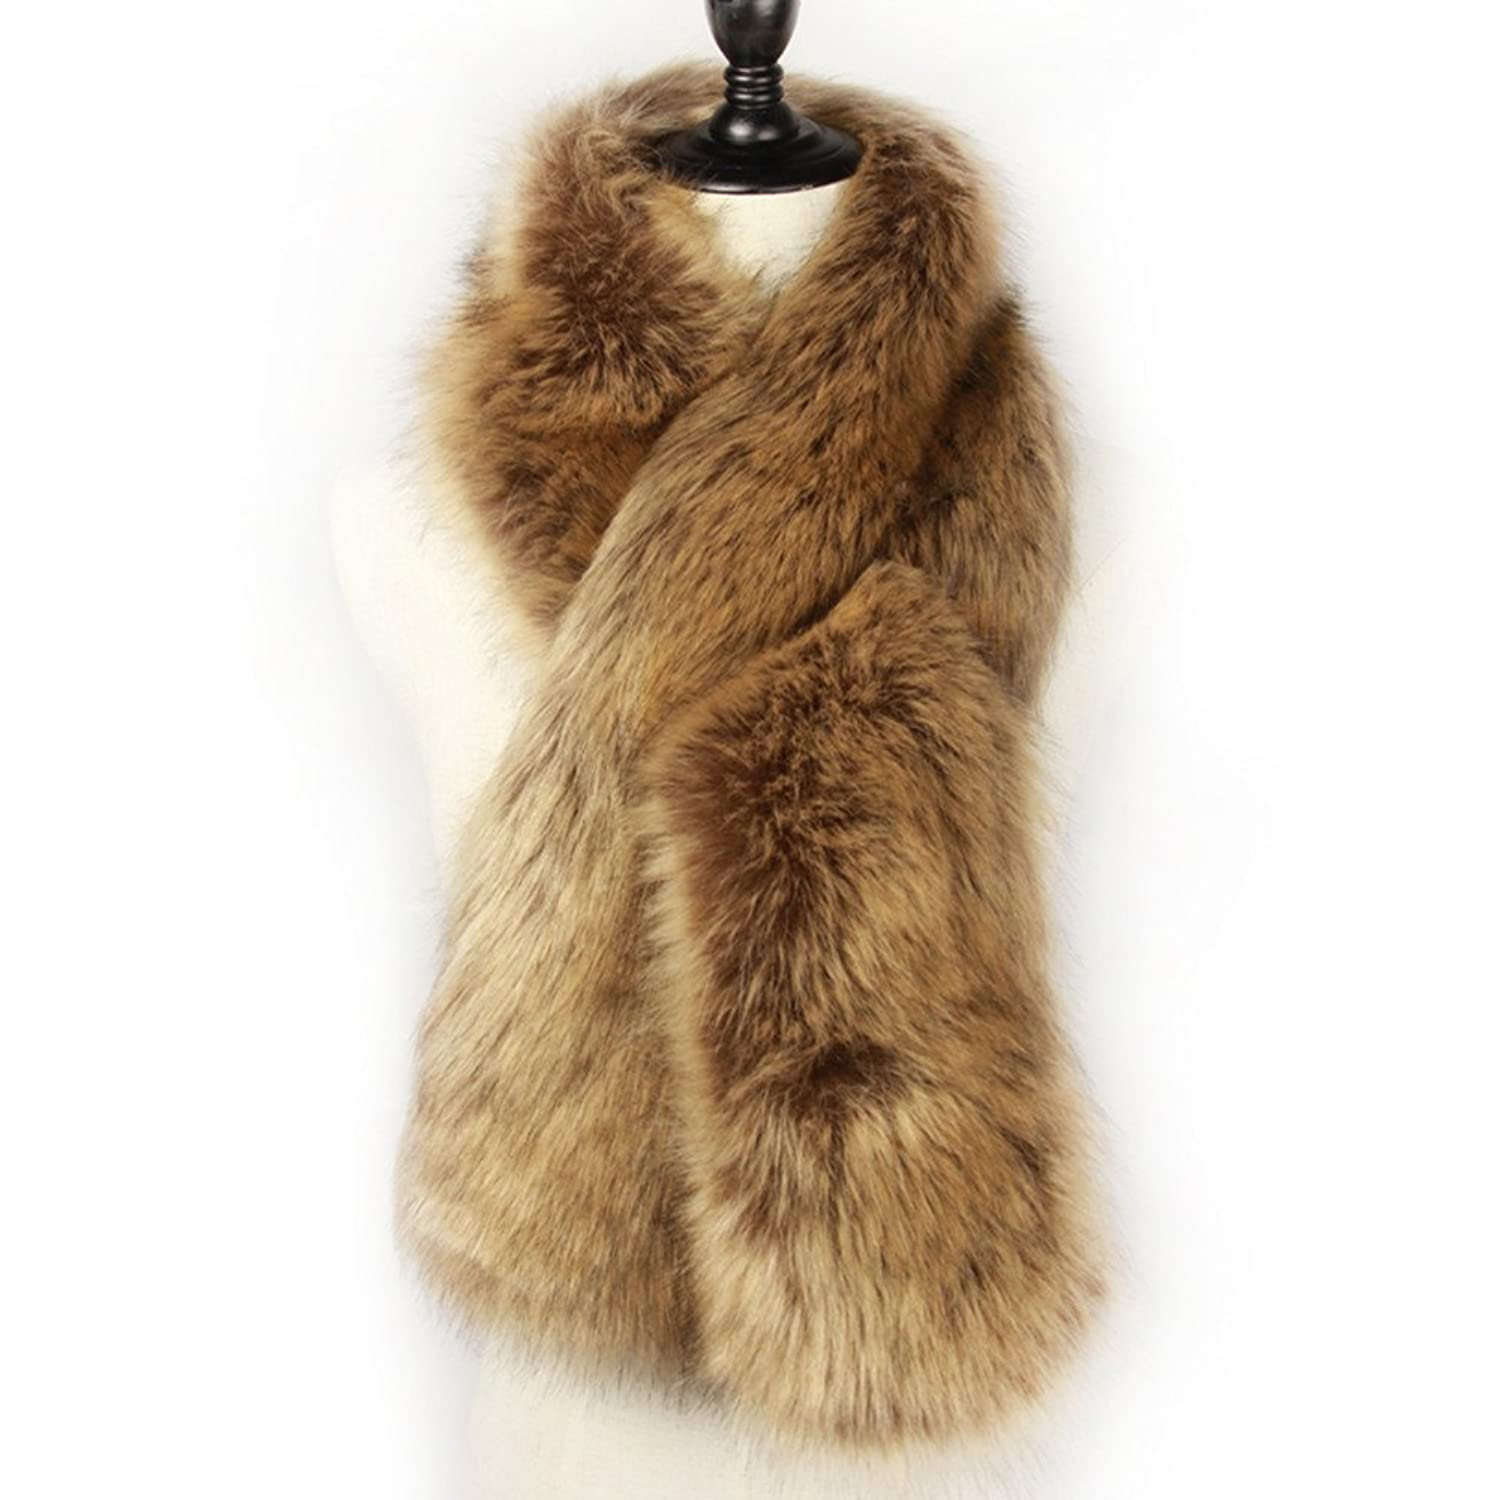 1940s Style Coats and Jackets for Sale  Faux Fur Scarf Wrap Collar Shawl Shrug $15.99 AT vintagedancer.com